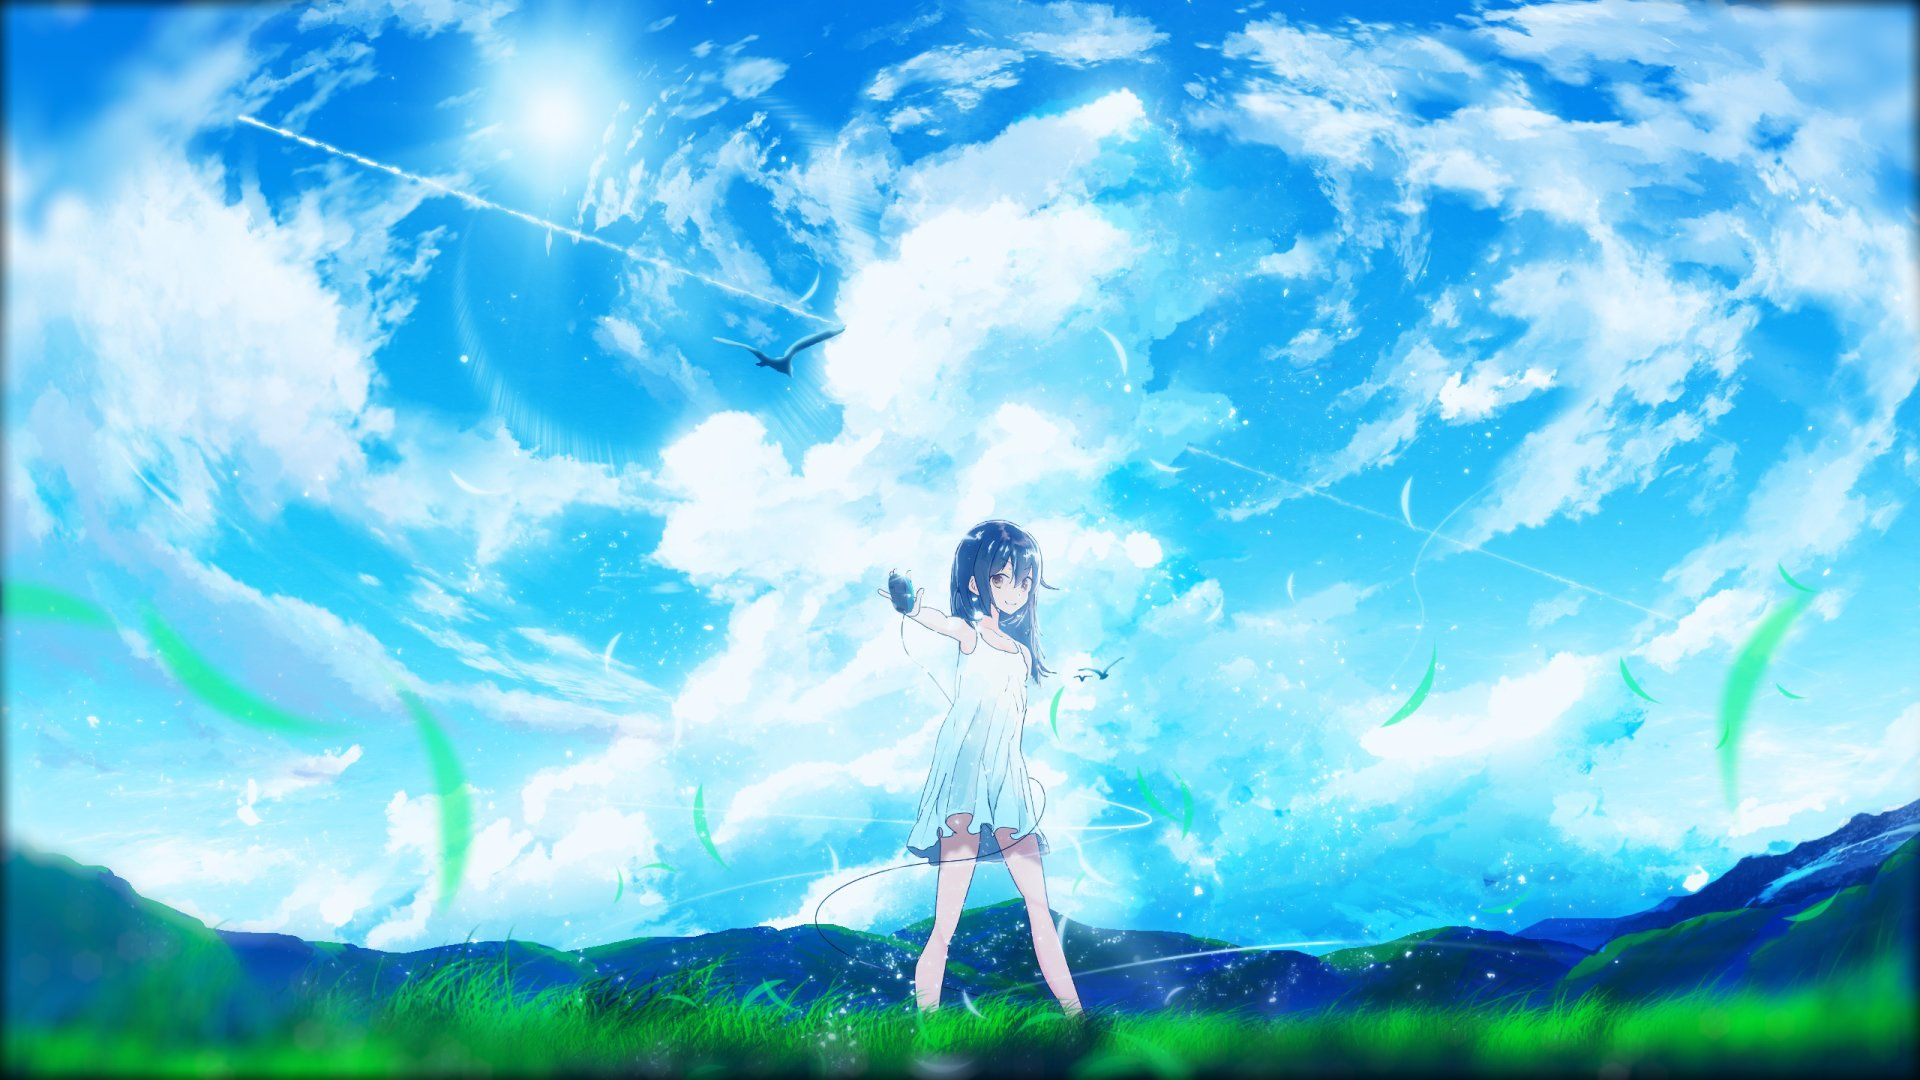 2560x1440 Original Wallpaper Background Image View Download Comment And Rate Wallpaper Abyss In Anime Scenery Cool Anime Pictures Background Images